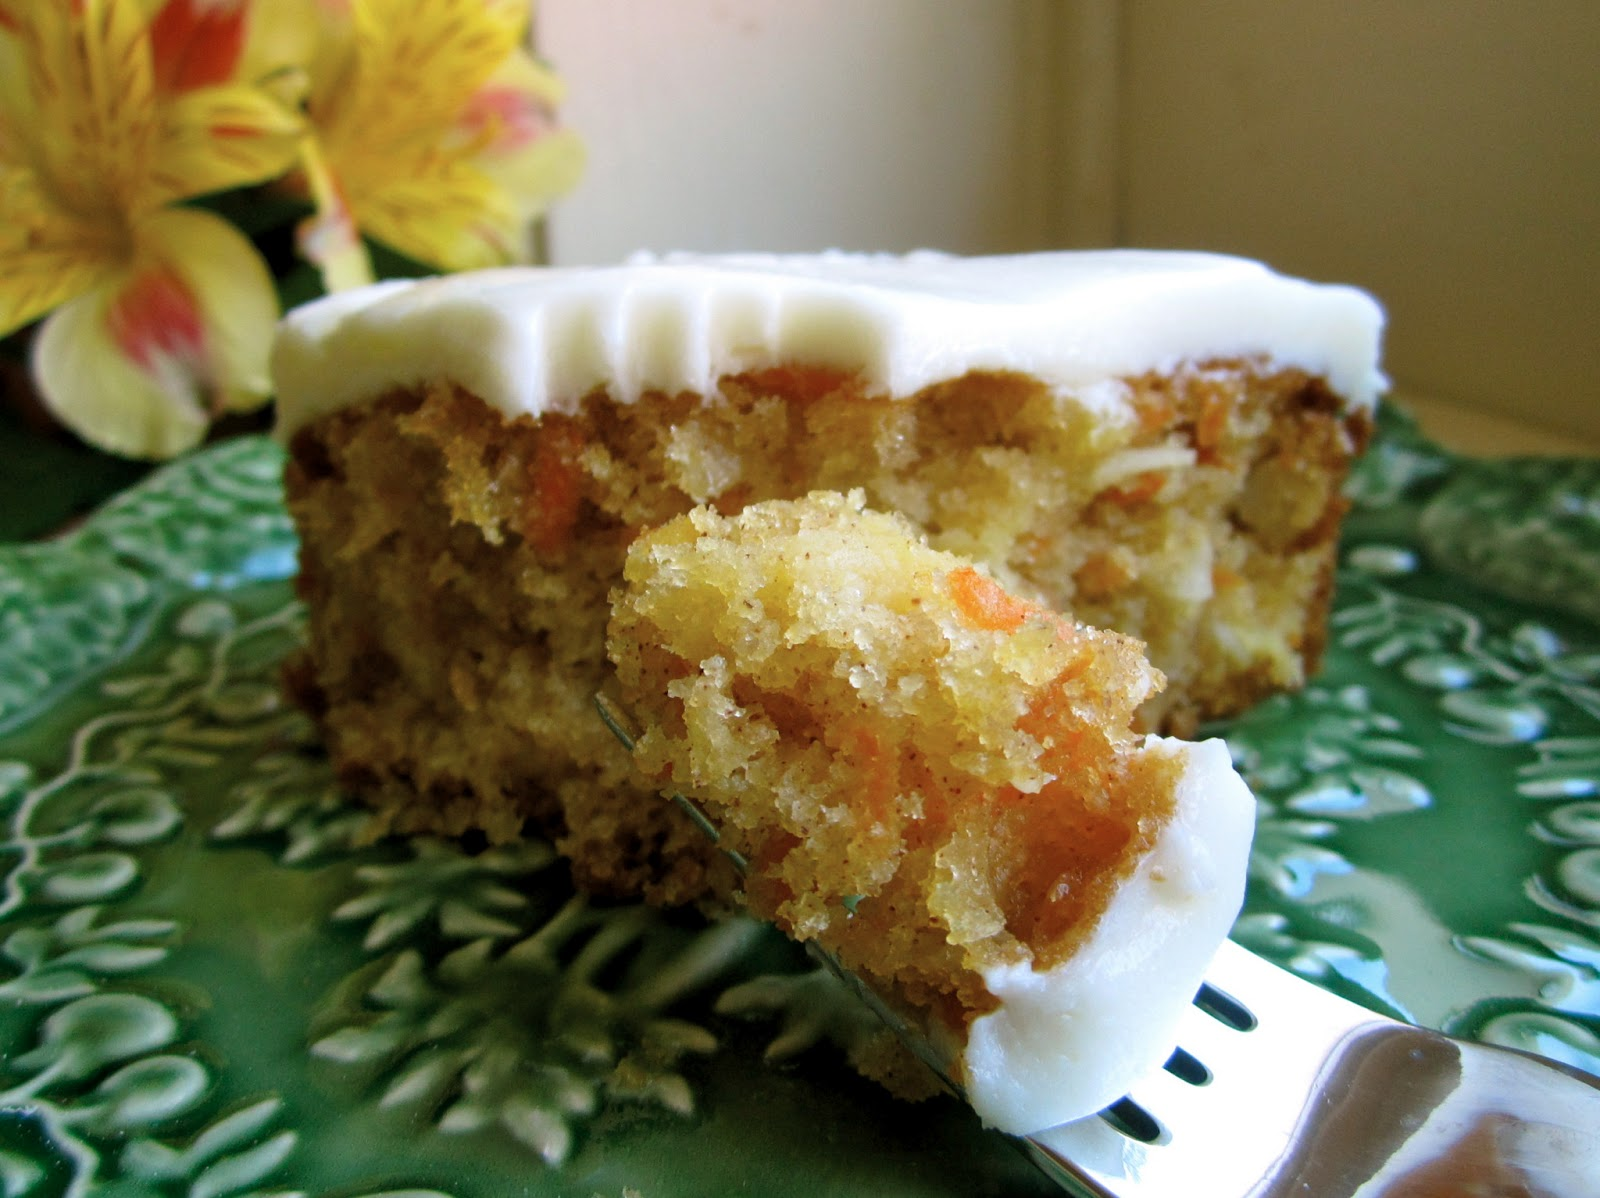 What Frosting Goes With Pineapple Cake